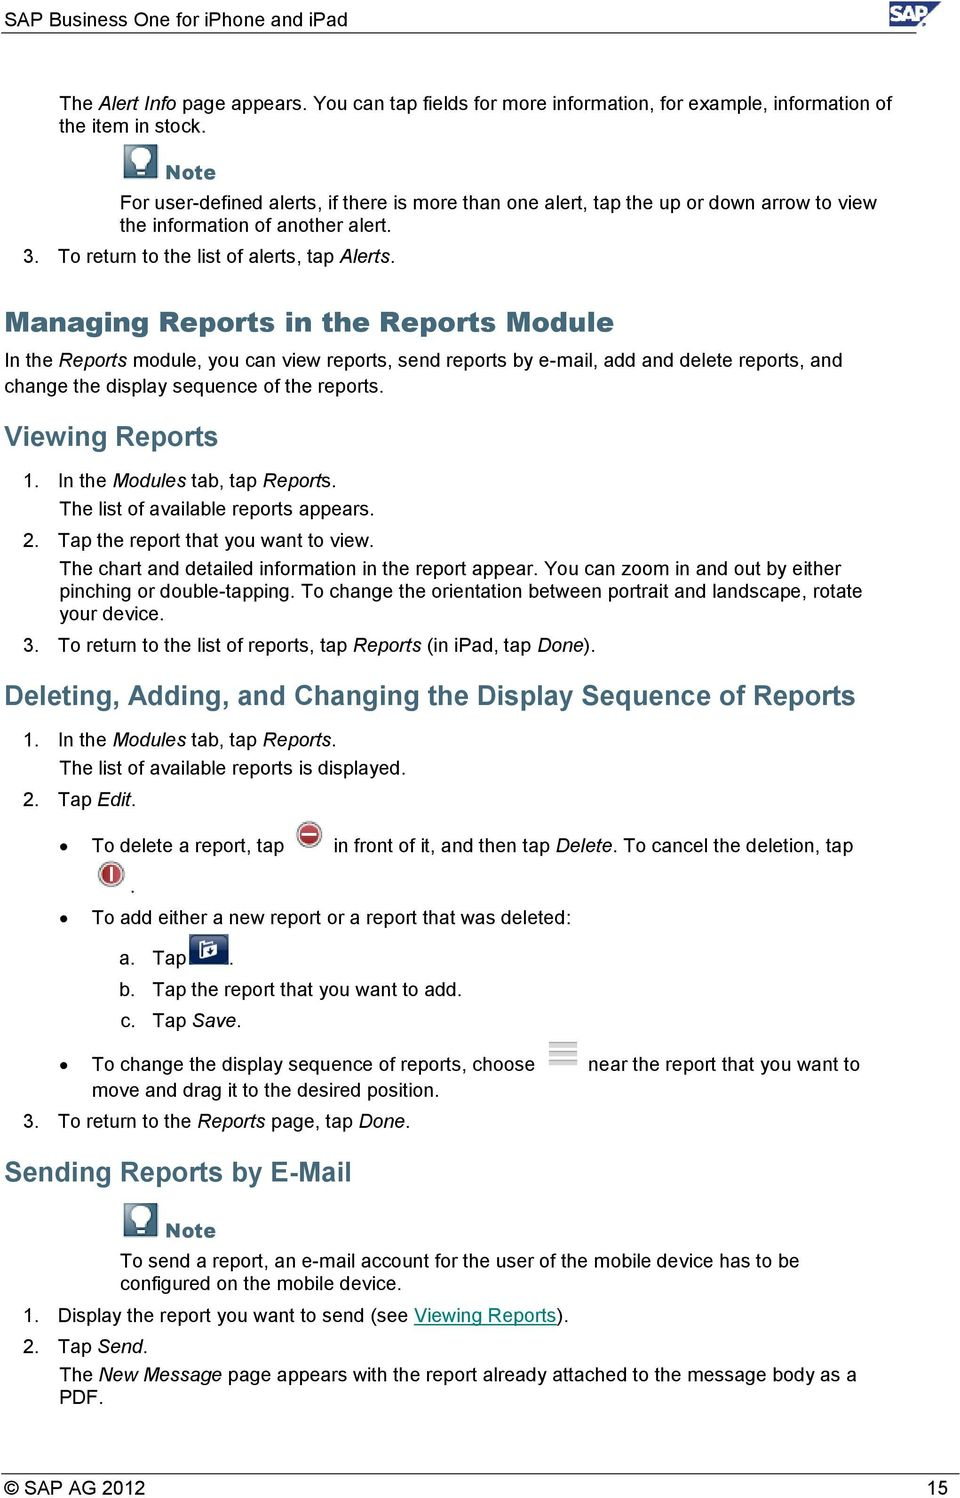 Managing Reports in the Reports Module In the Reports module, you can view reports, send reports by e-mail, add and delete reports, and change the display sequence of the reports. Viewing Reports 1.